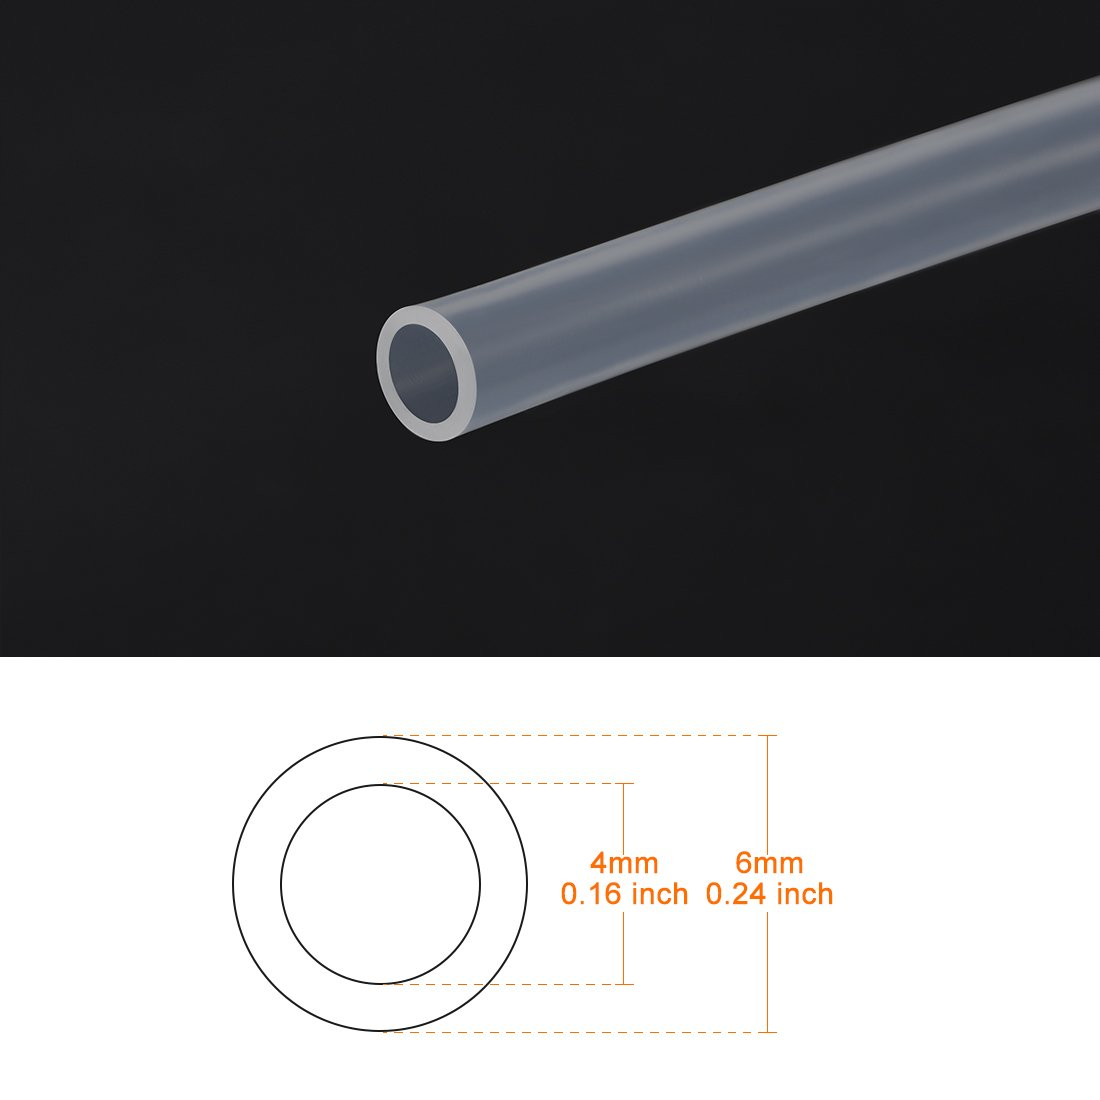 sourcing map PTFE Tube Tubing 2mm ID 4mm OD for 3D Printer RepRap 1 Meter 3.3ft Long for 3.0 Filament Pipe